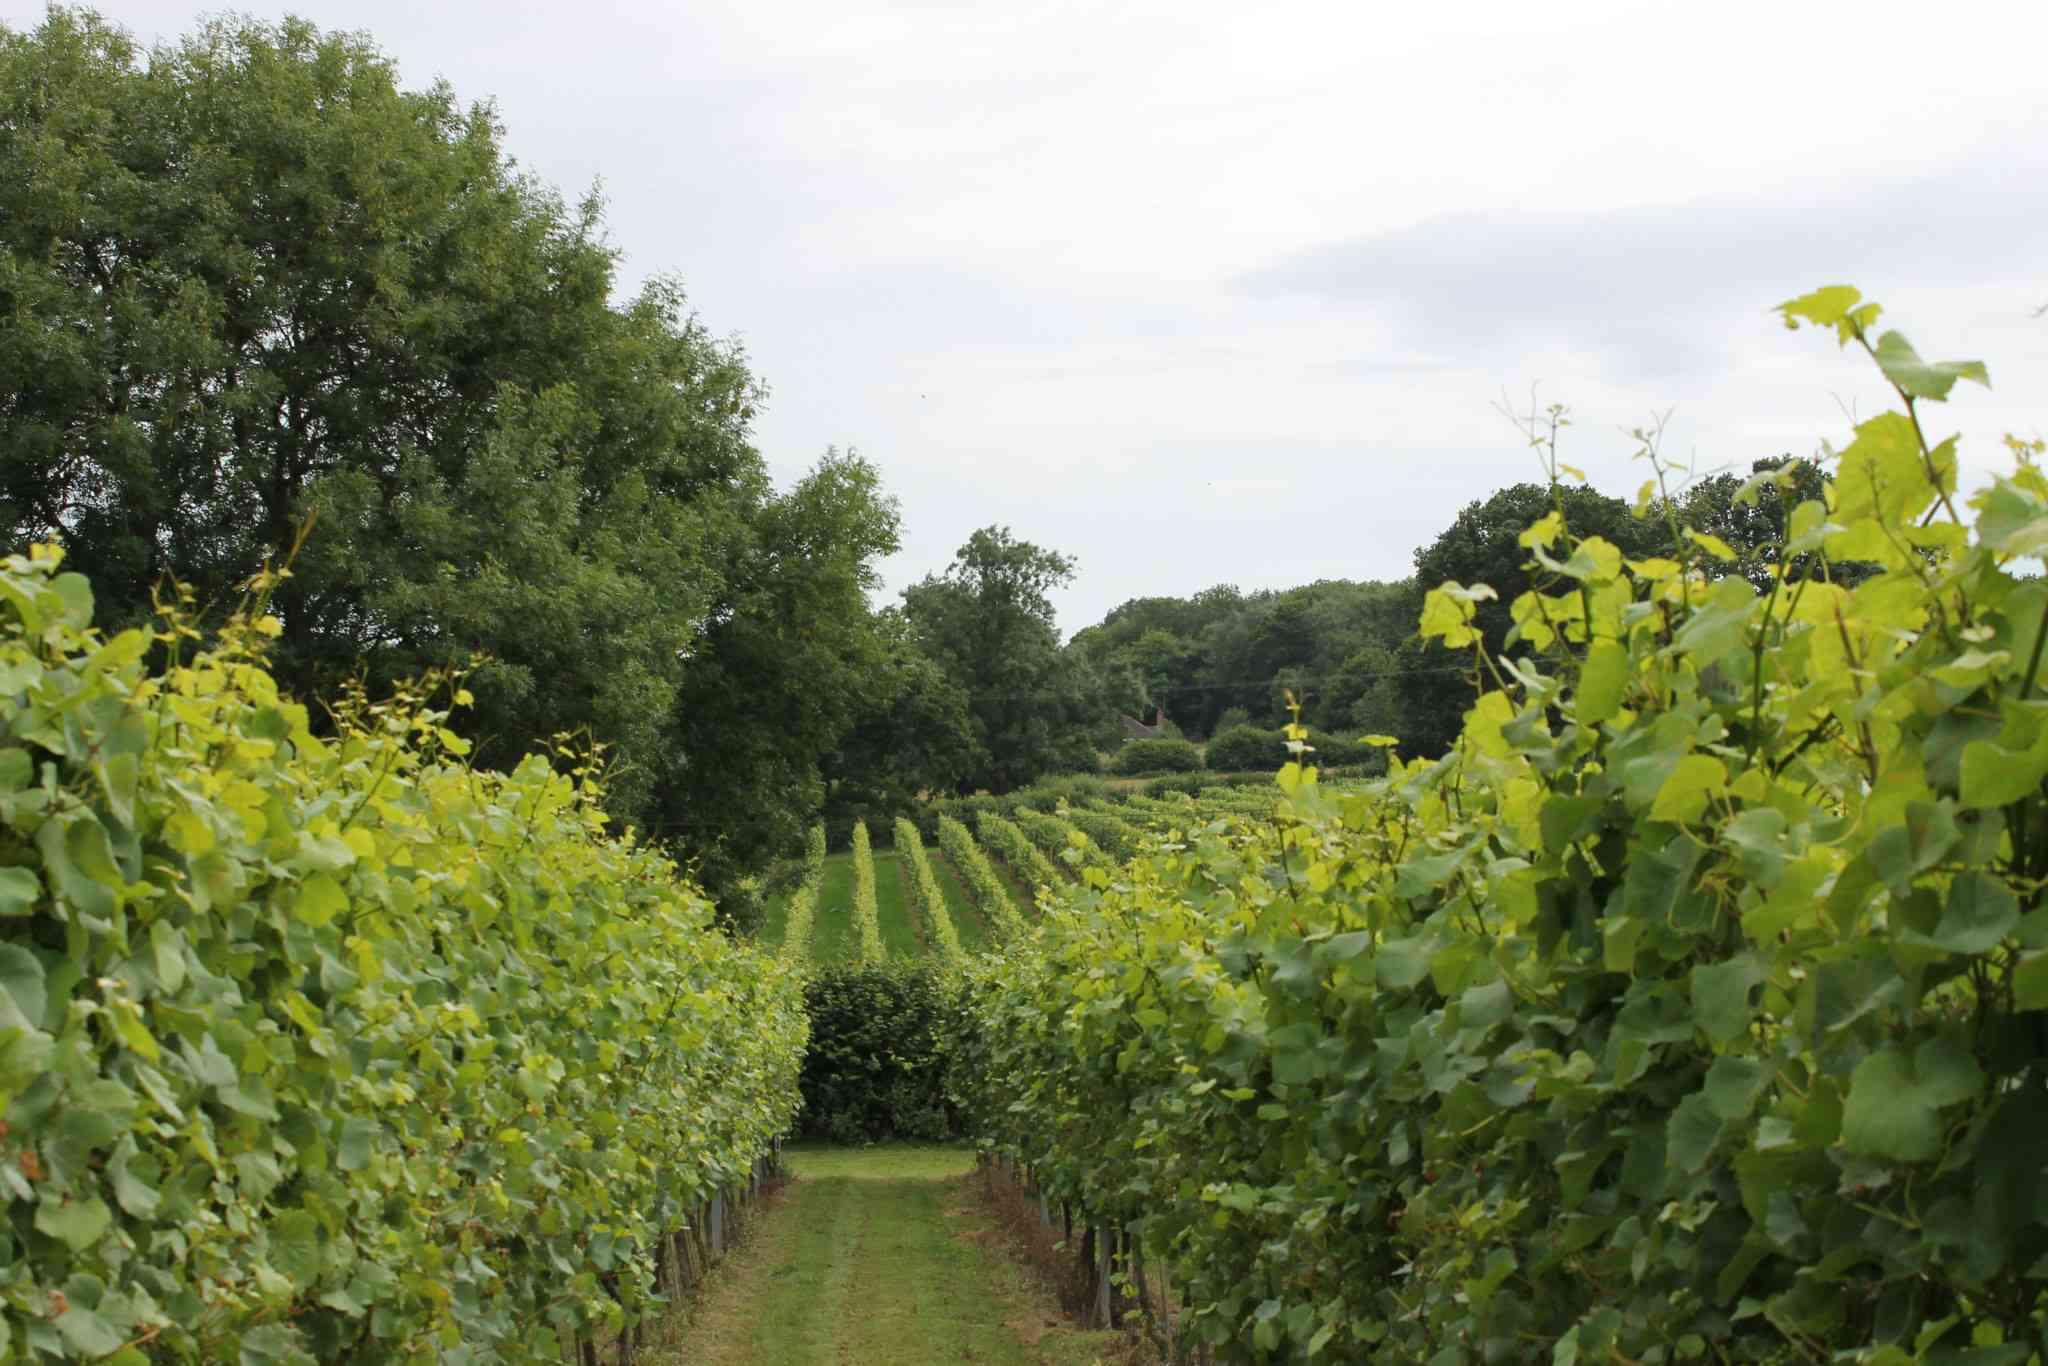 Rows of green grapevines in England